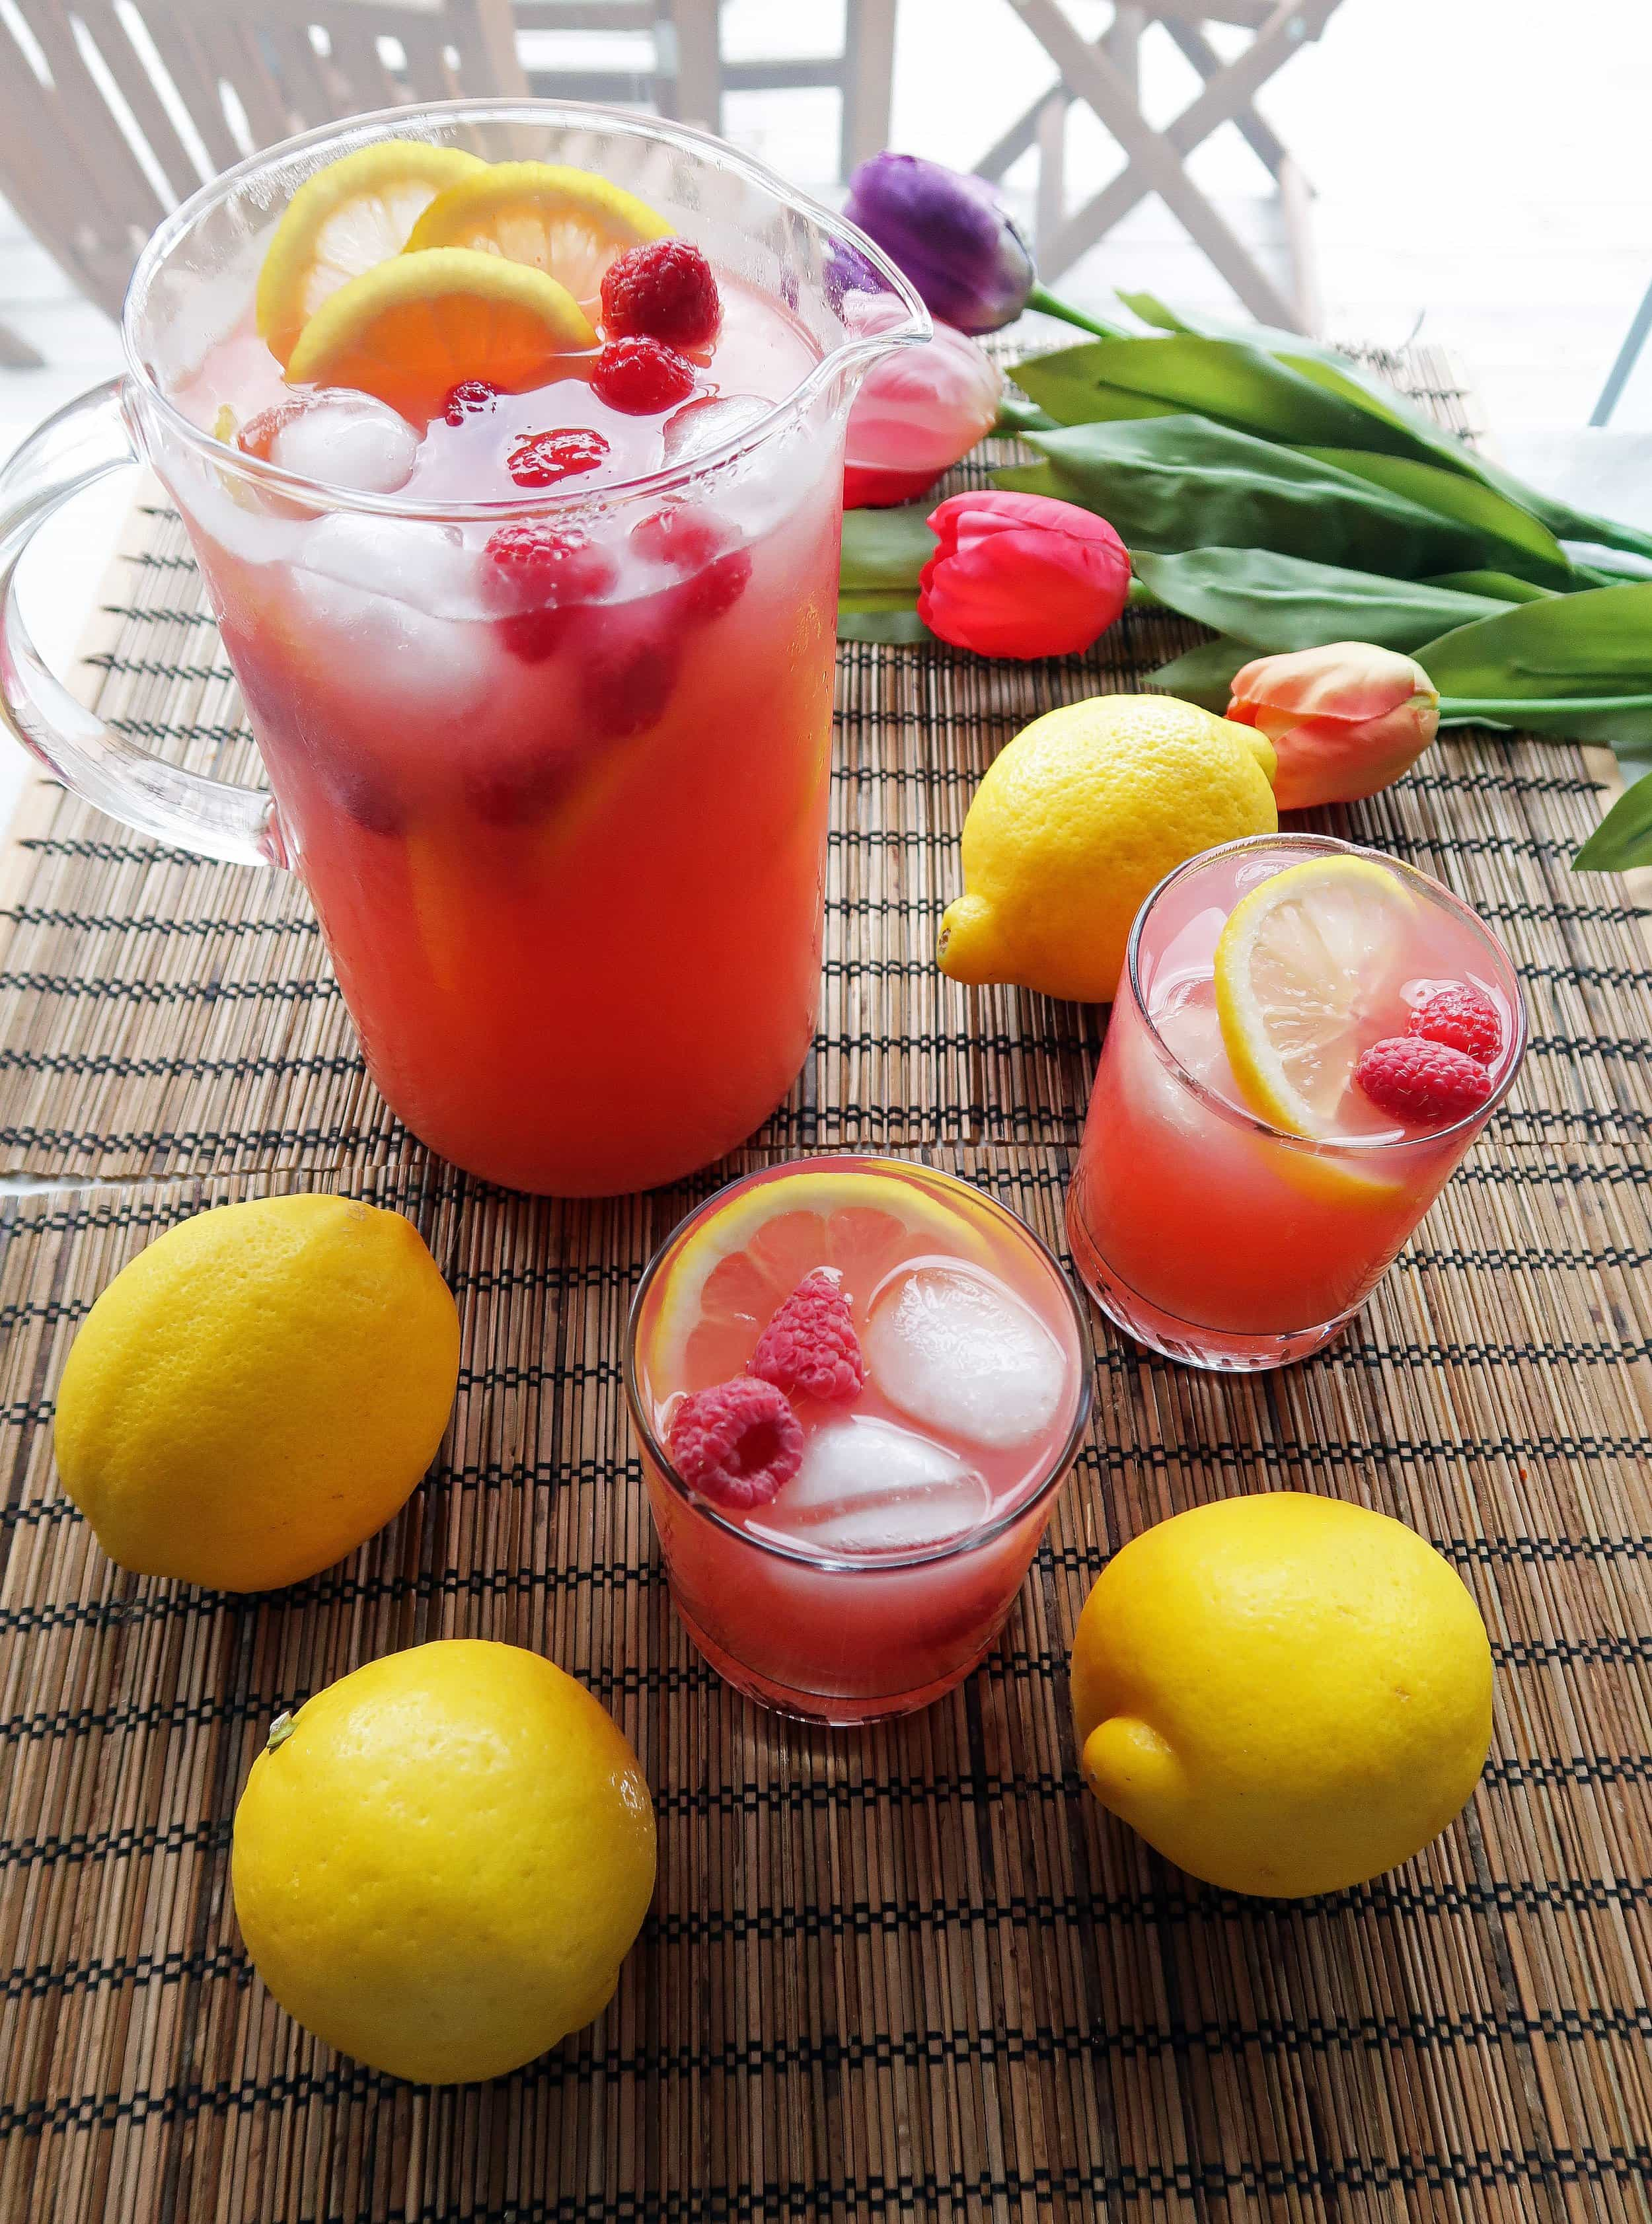 Two glasses and a pitcher full of homemade Raspberry Green Tea Lemonade with lemon slices and raspberry garnish; whole lemons around them.